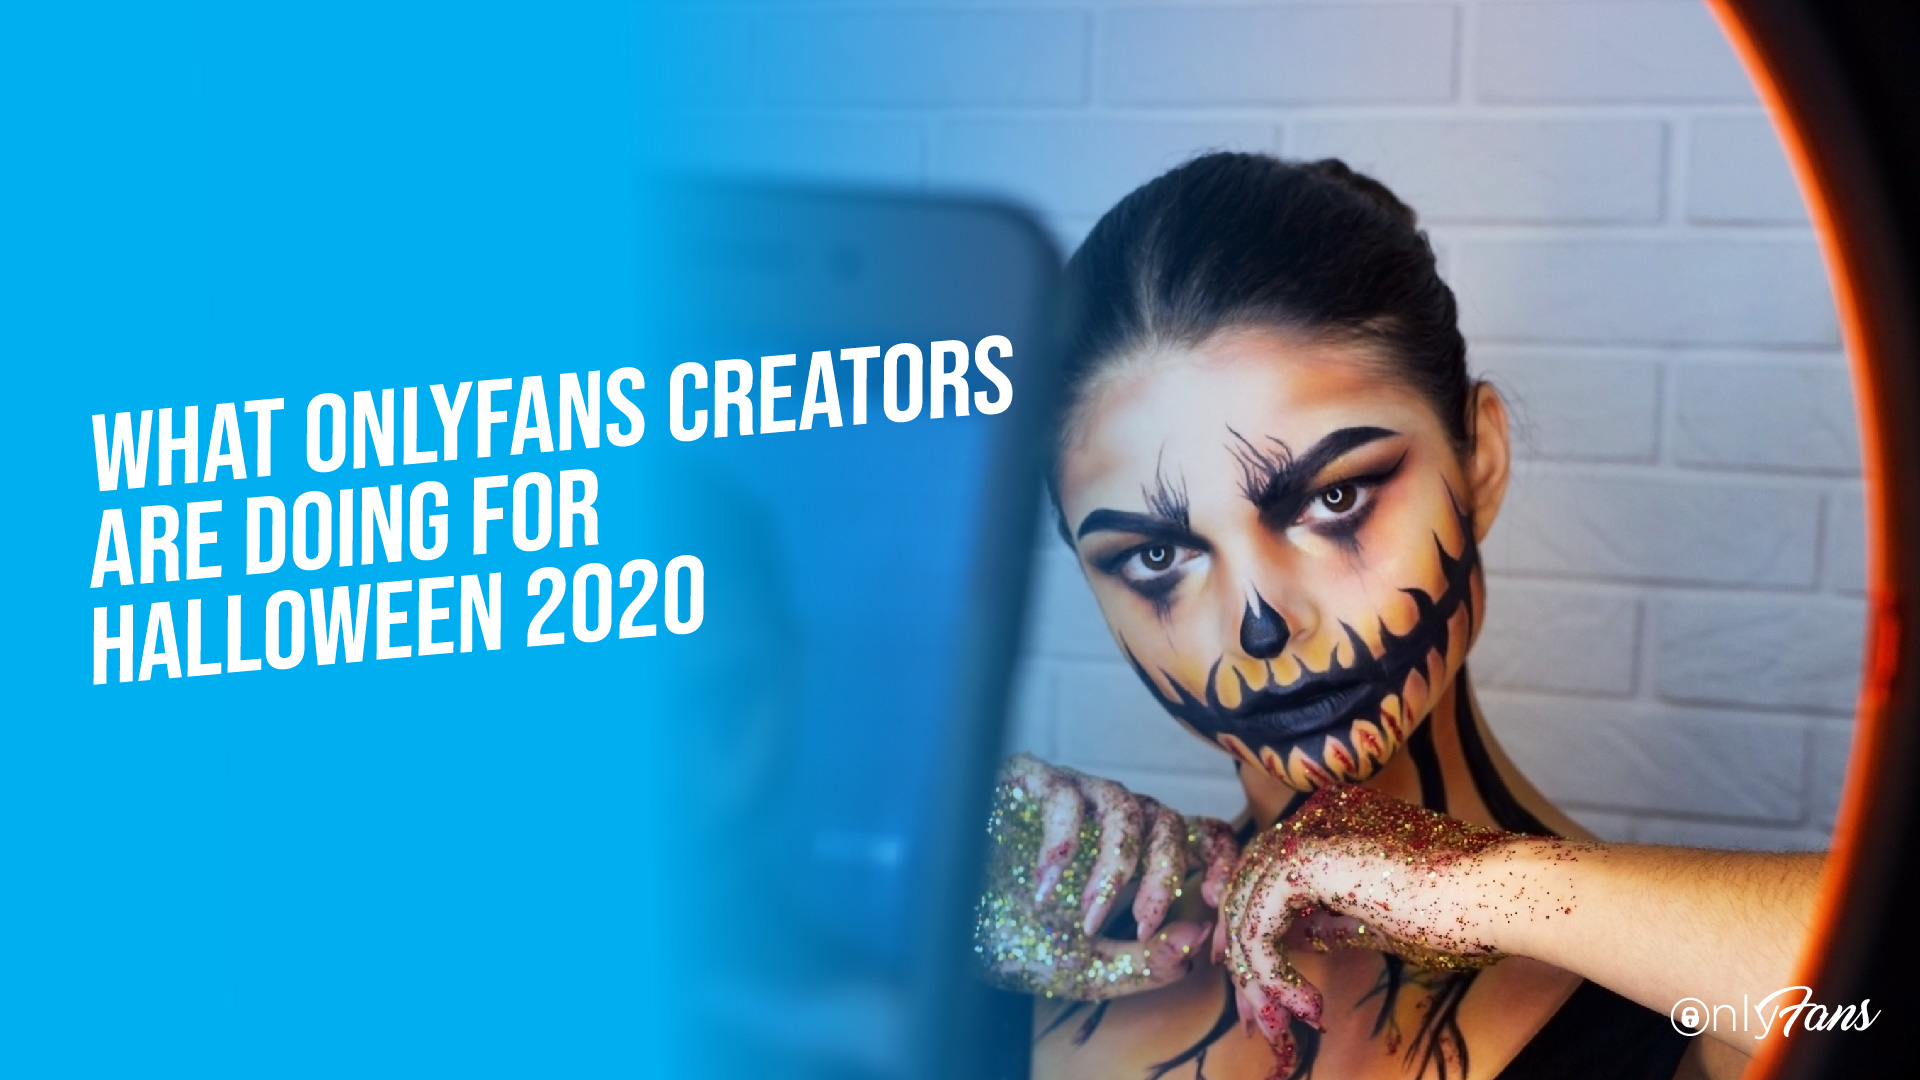 what onlyfans creators are doing for halloween 2020